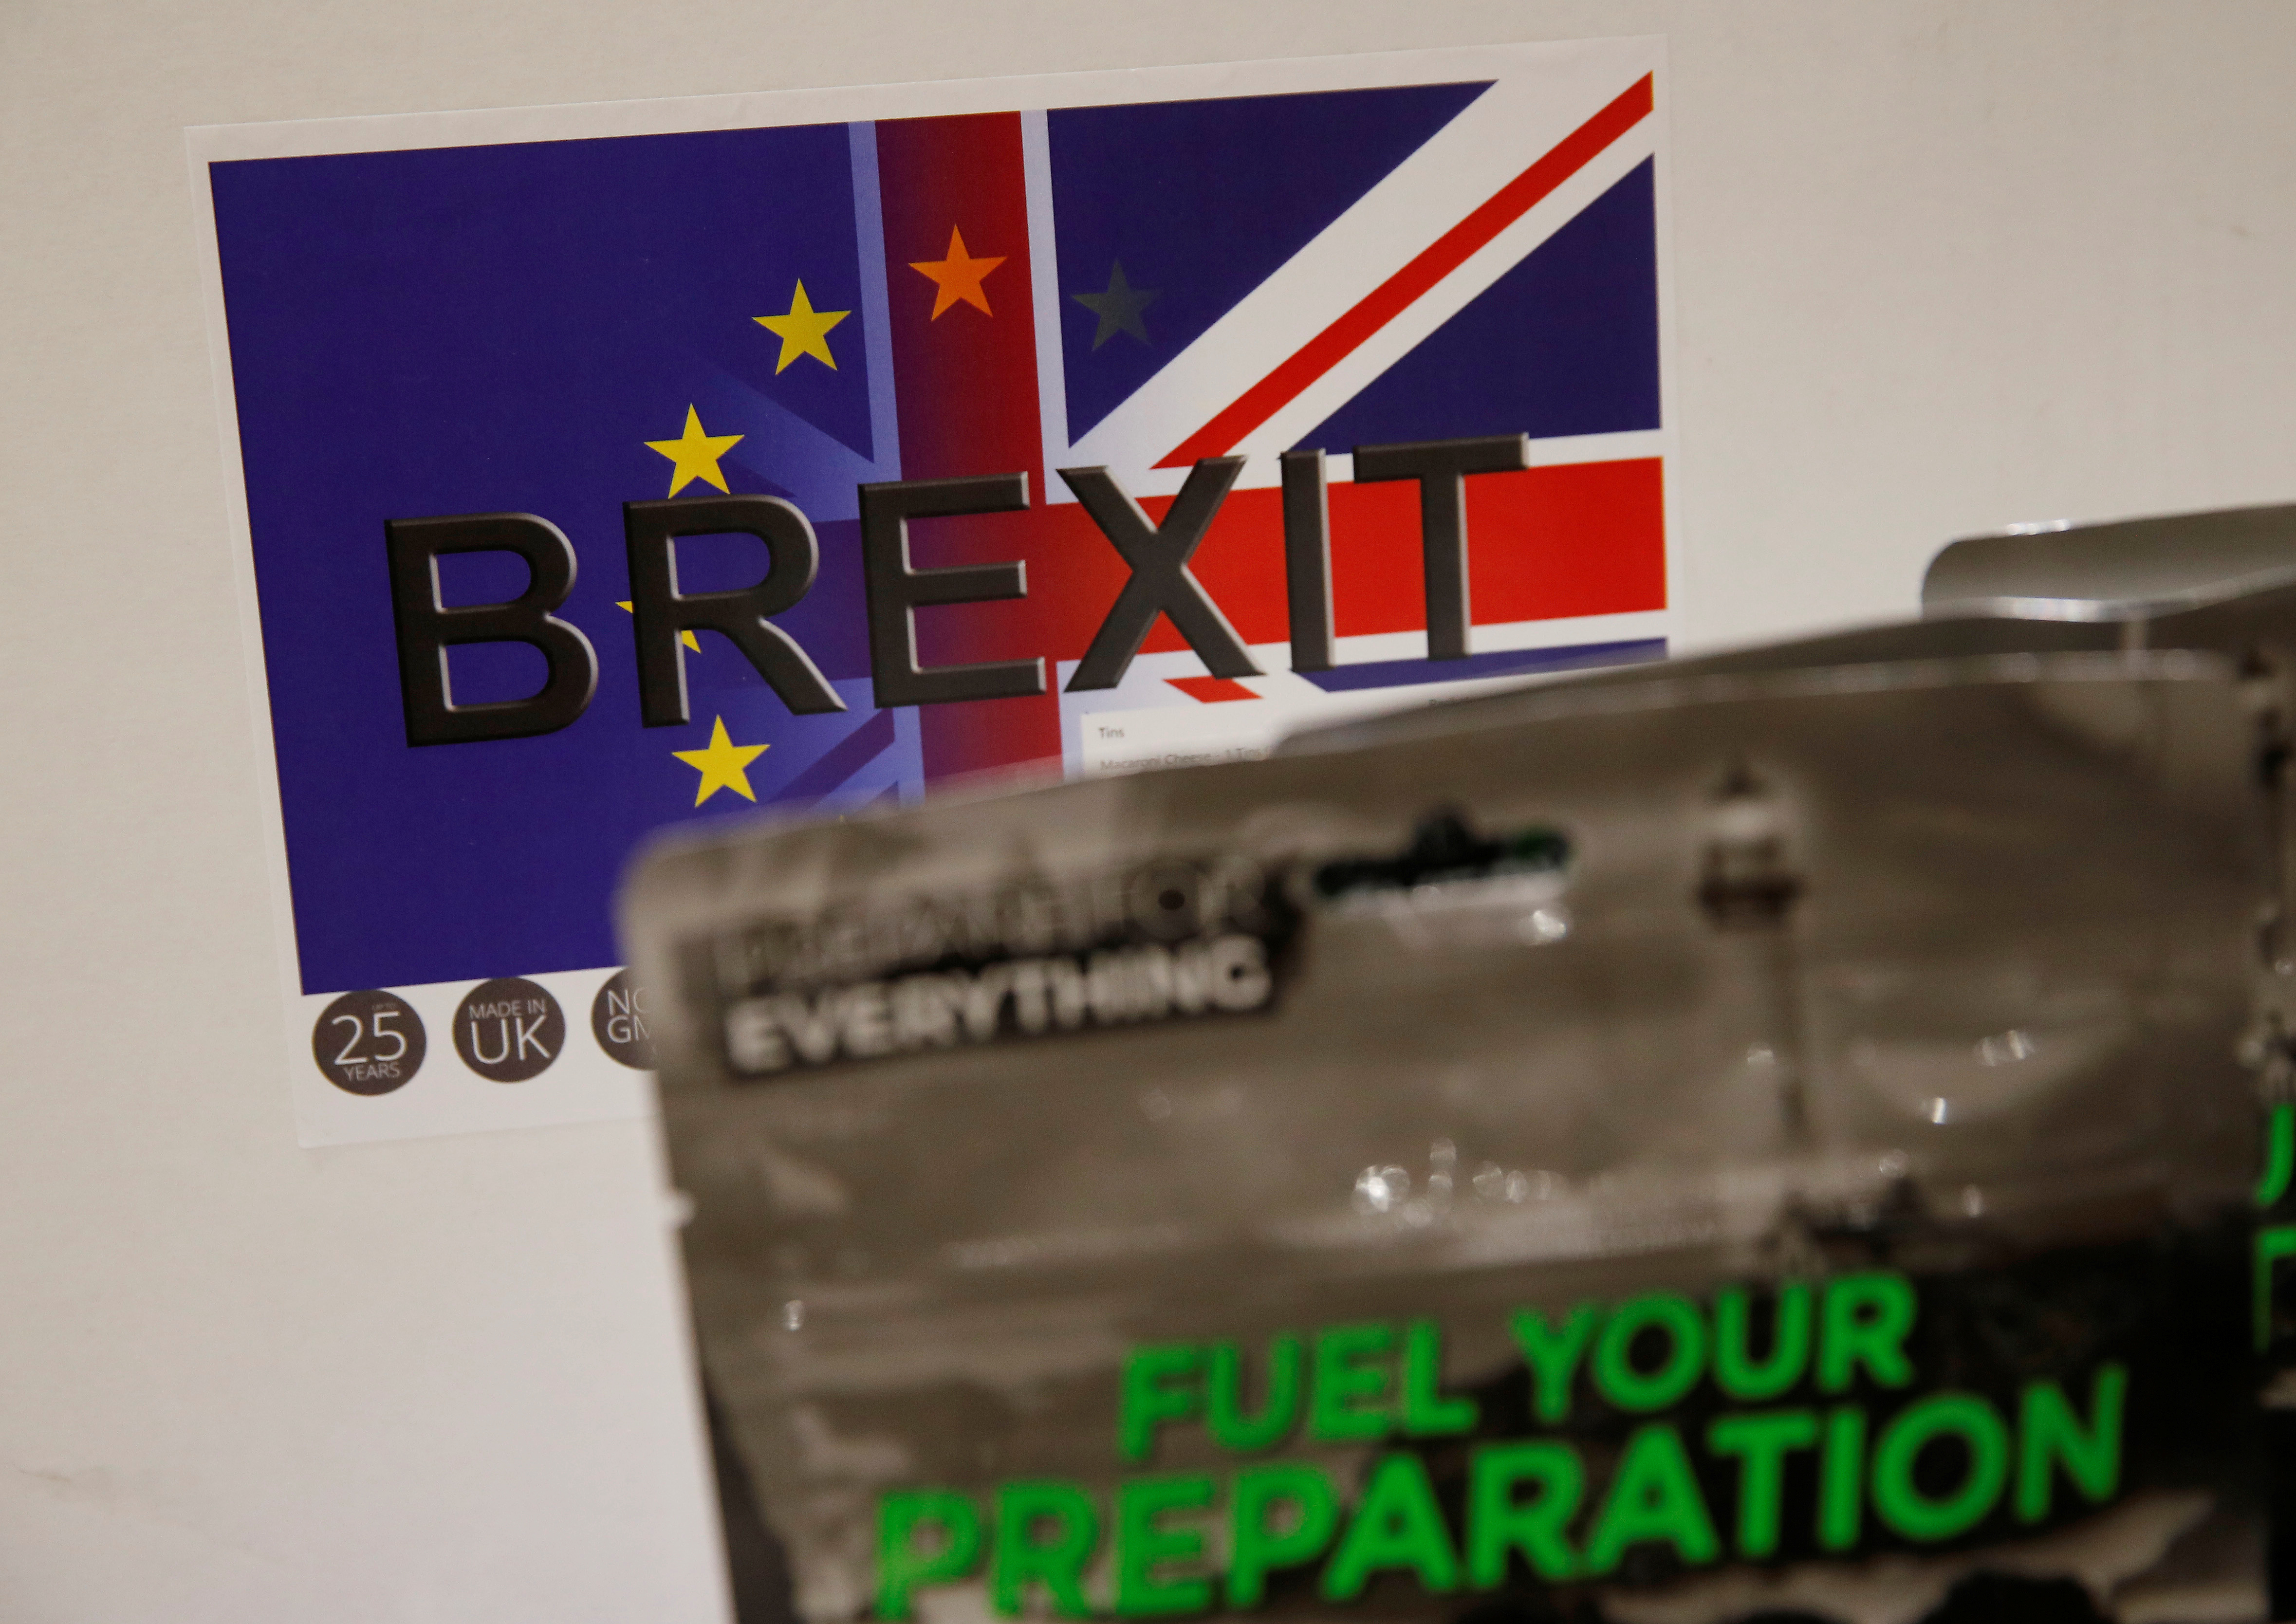 'Brexit Box' ration kits which contain dehydrated food, water purifying kit and fire starting gel are pictured at the warehouse of emergency food storage.co.uk in Leeds, Britain January 21, 2019. REUTERS/Phil Noble